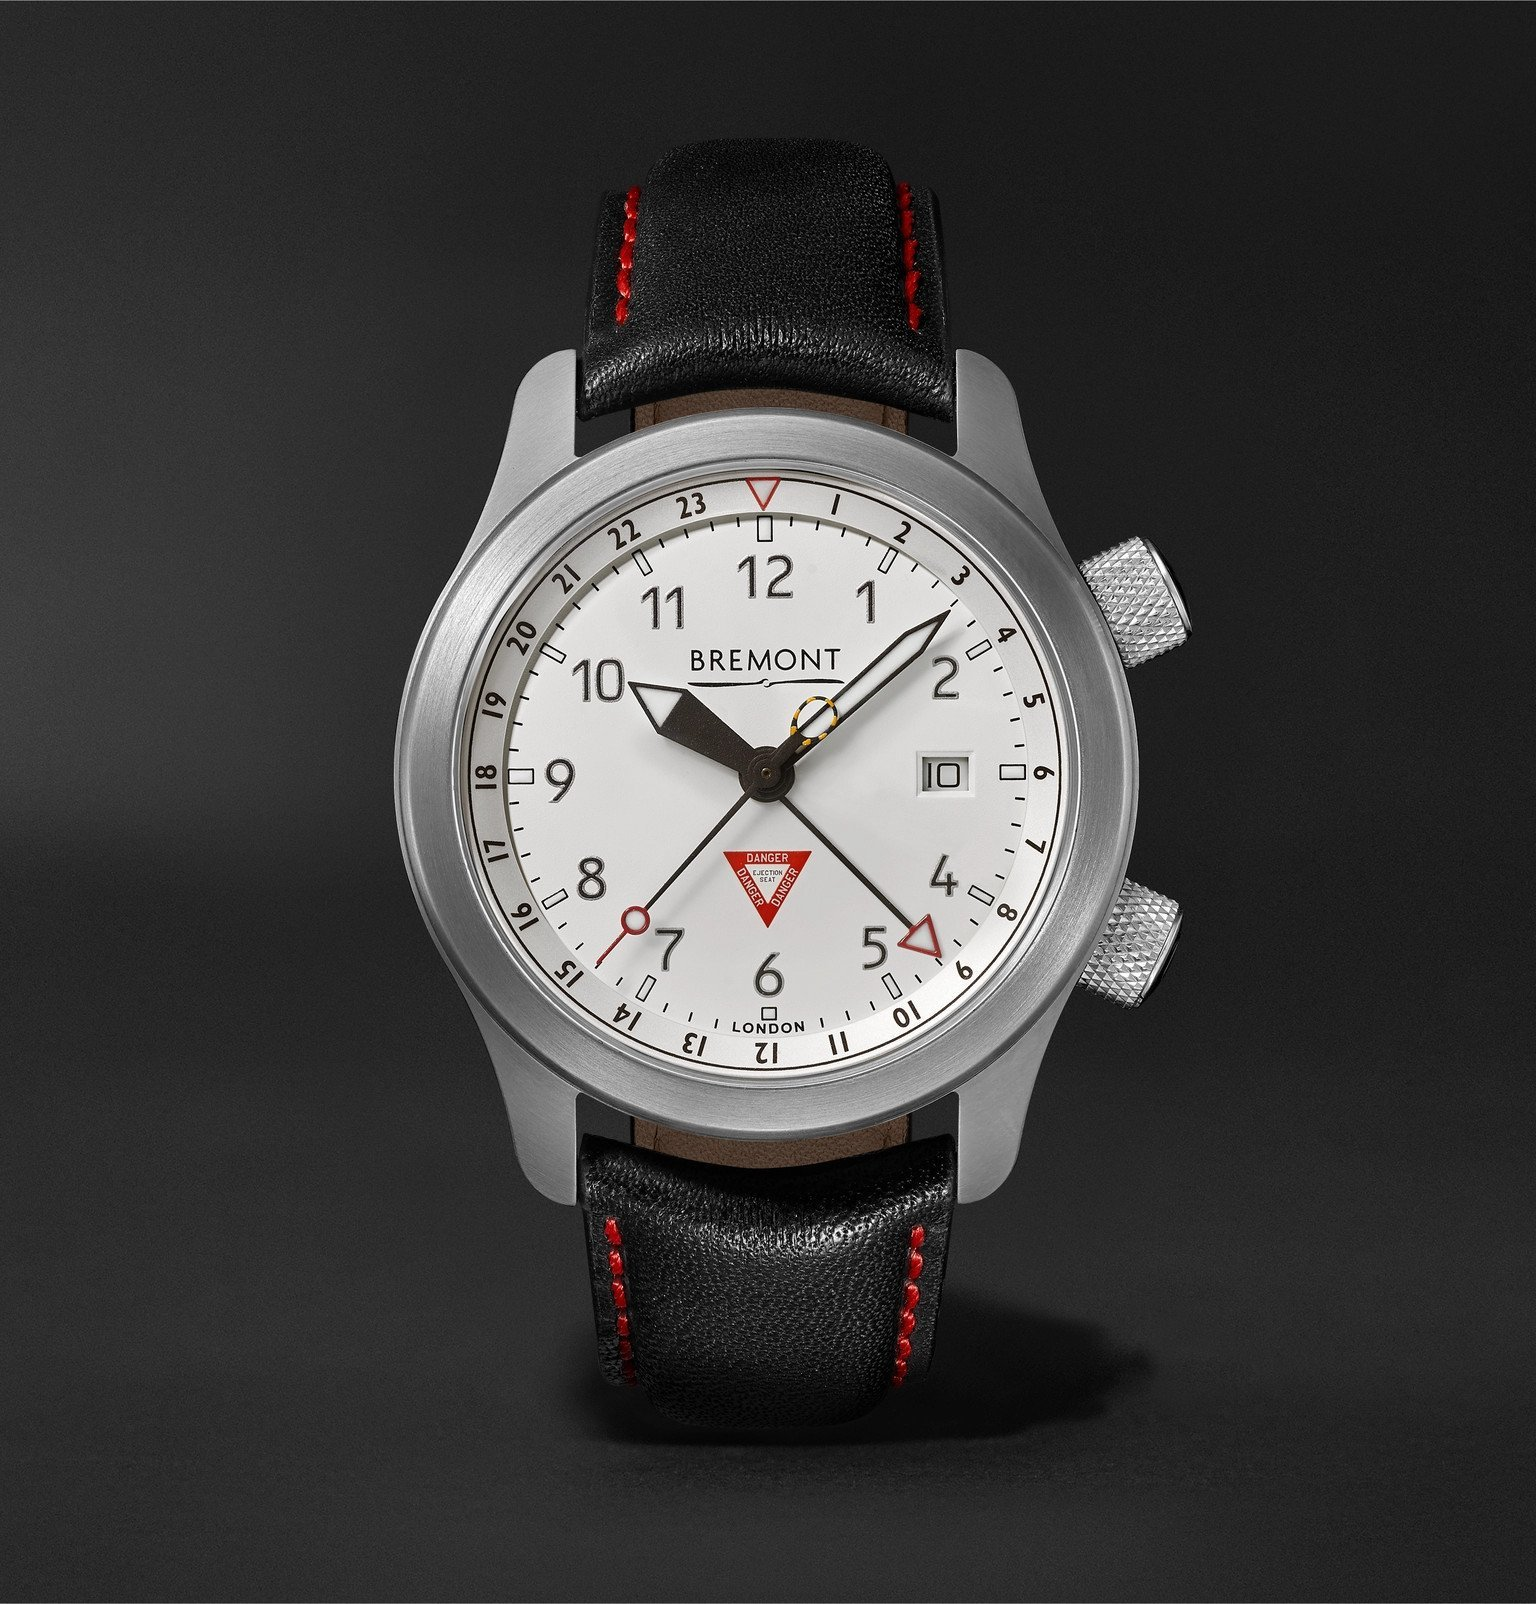 Photo: Bremont - MBIII GMT 10th Anniversary Limited Edition Automatic Chronometer 43mm Stainless Steel and Leather Watch - White